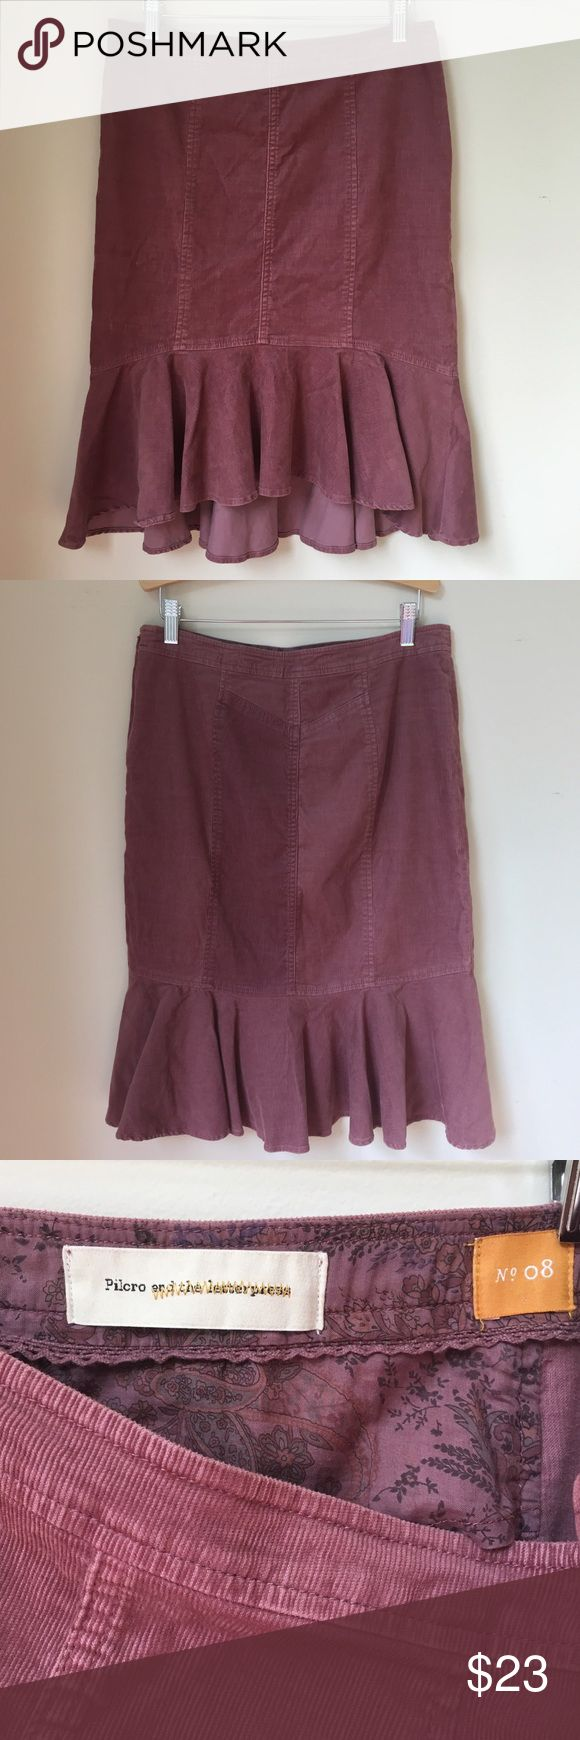 SALE 🇺🇸♥️ Pilcro and The Letterpress Skirt Gently used burgundy corduroy trumpet fir and flare skirt from Anthropologie. Pilcro and the Letterpress. Size 8 Price is Firm Anthropologie Skirts Midi